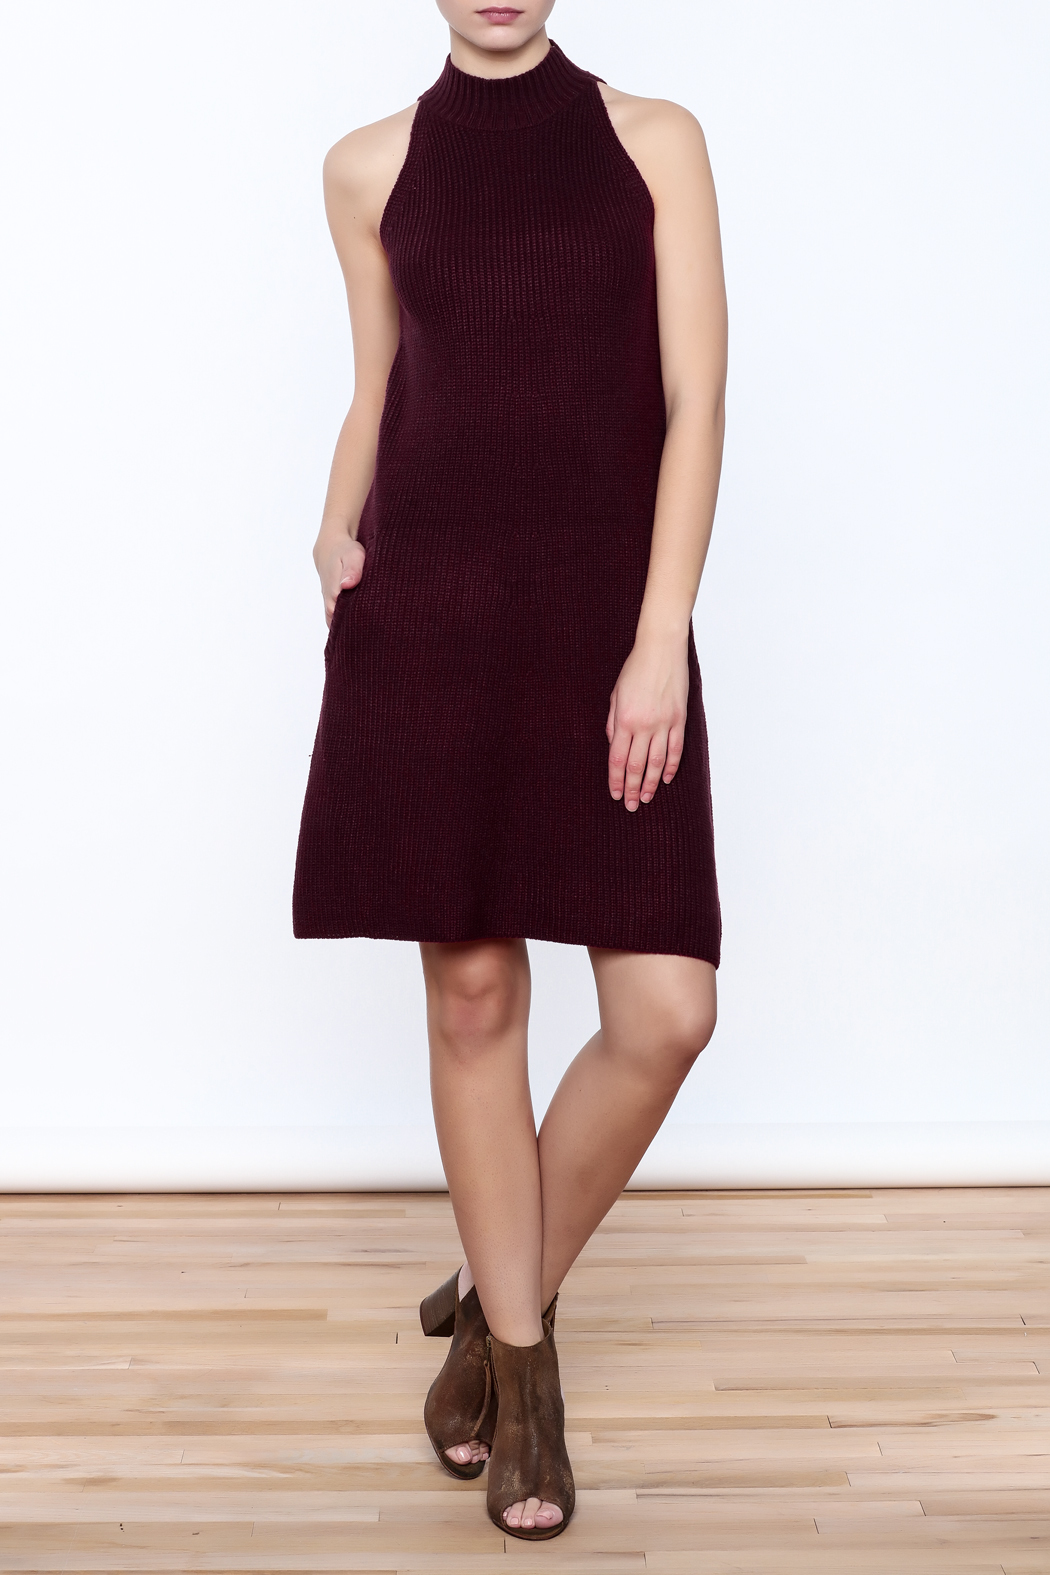 Bishop + Young Scarlett Sweater Dress - Front Full Image